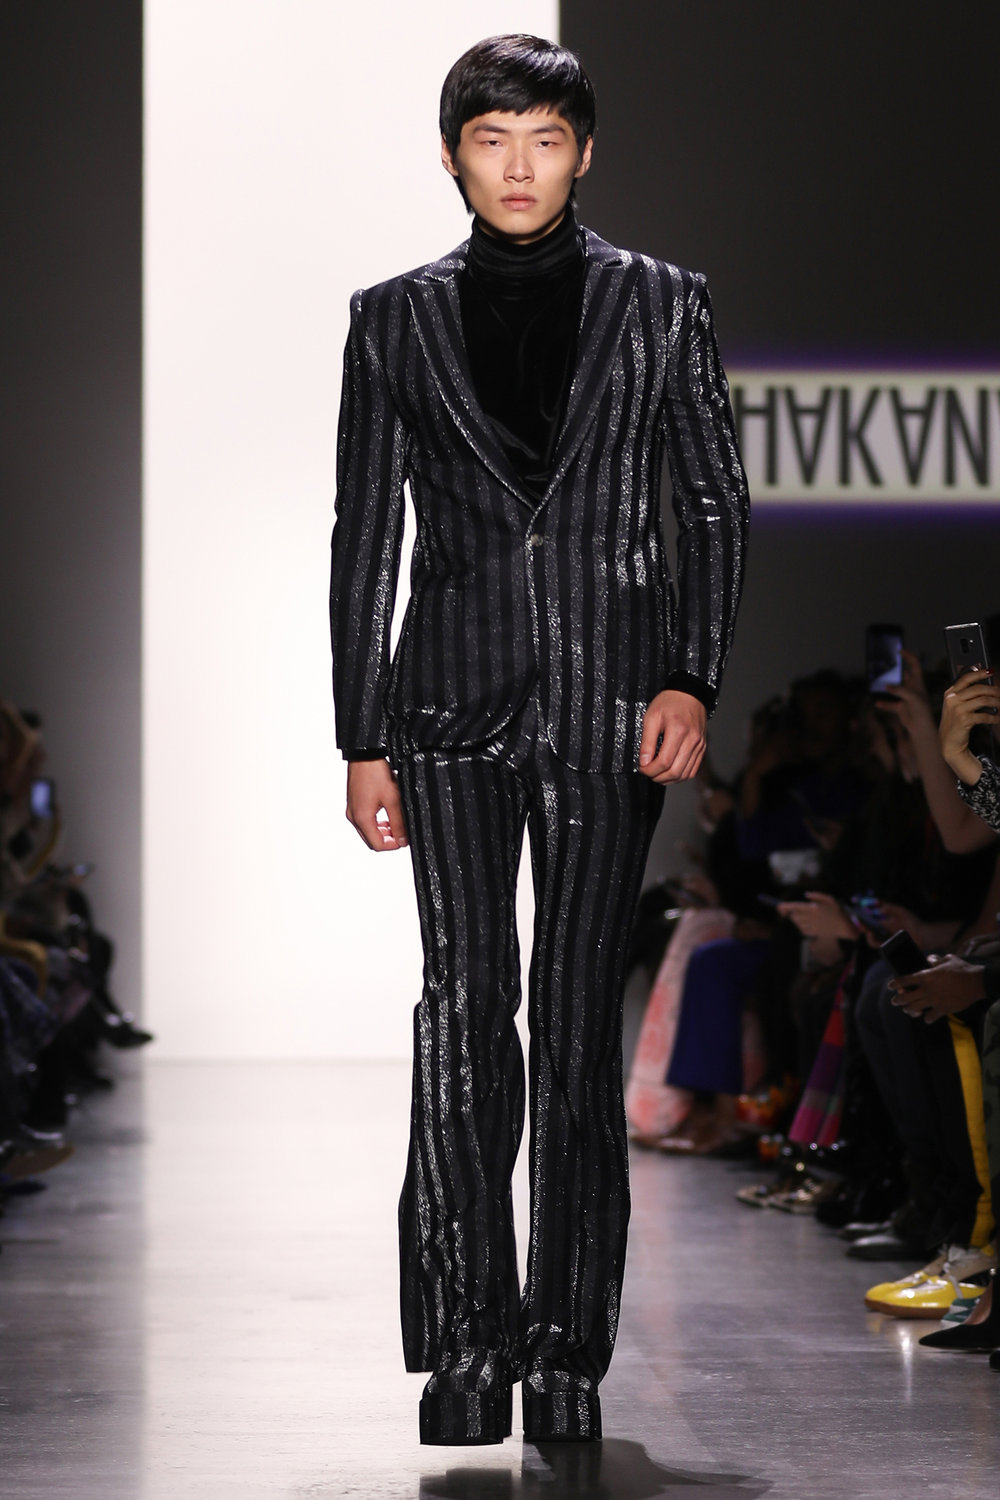 Hakan-Akkaya-NYFW-Fall-2019-20-300dpi-Photo-Credit-Elvia-Gobbo.jpg